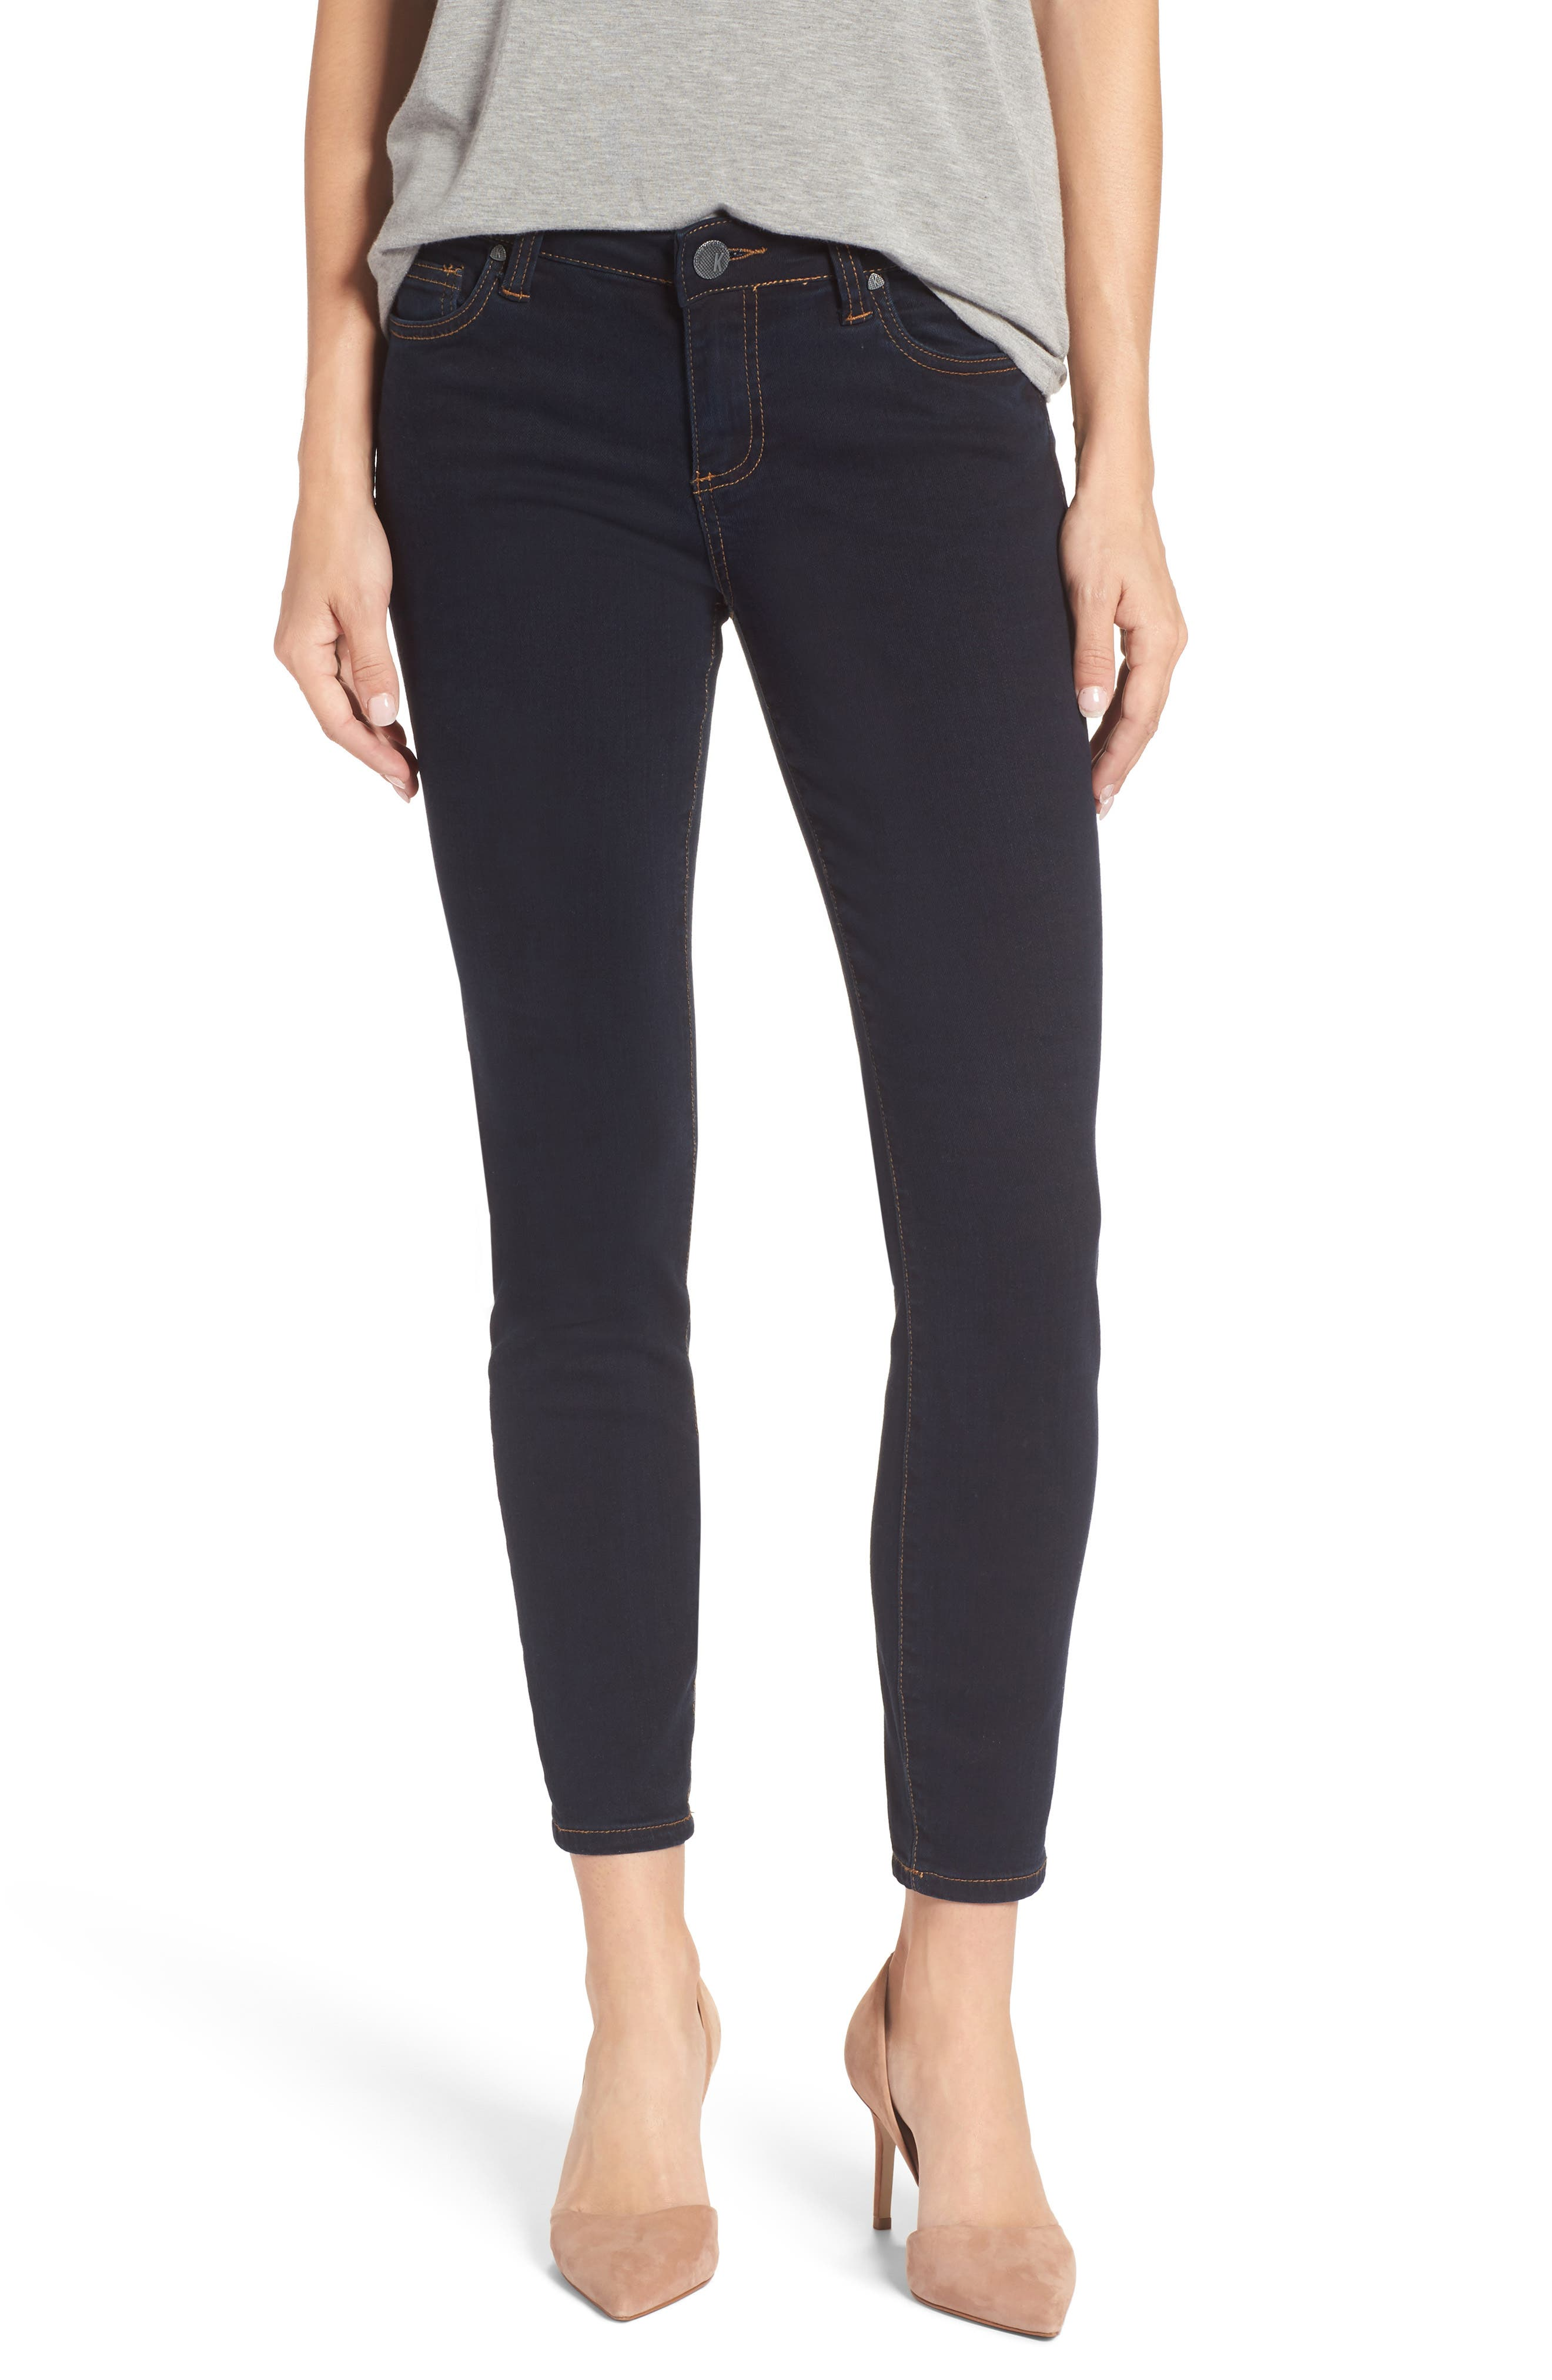 Connie Ankle Skinny Jeans,                         Main,                         color, Unisonant/ Dark Stone Base